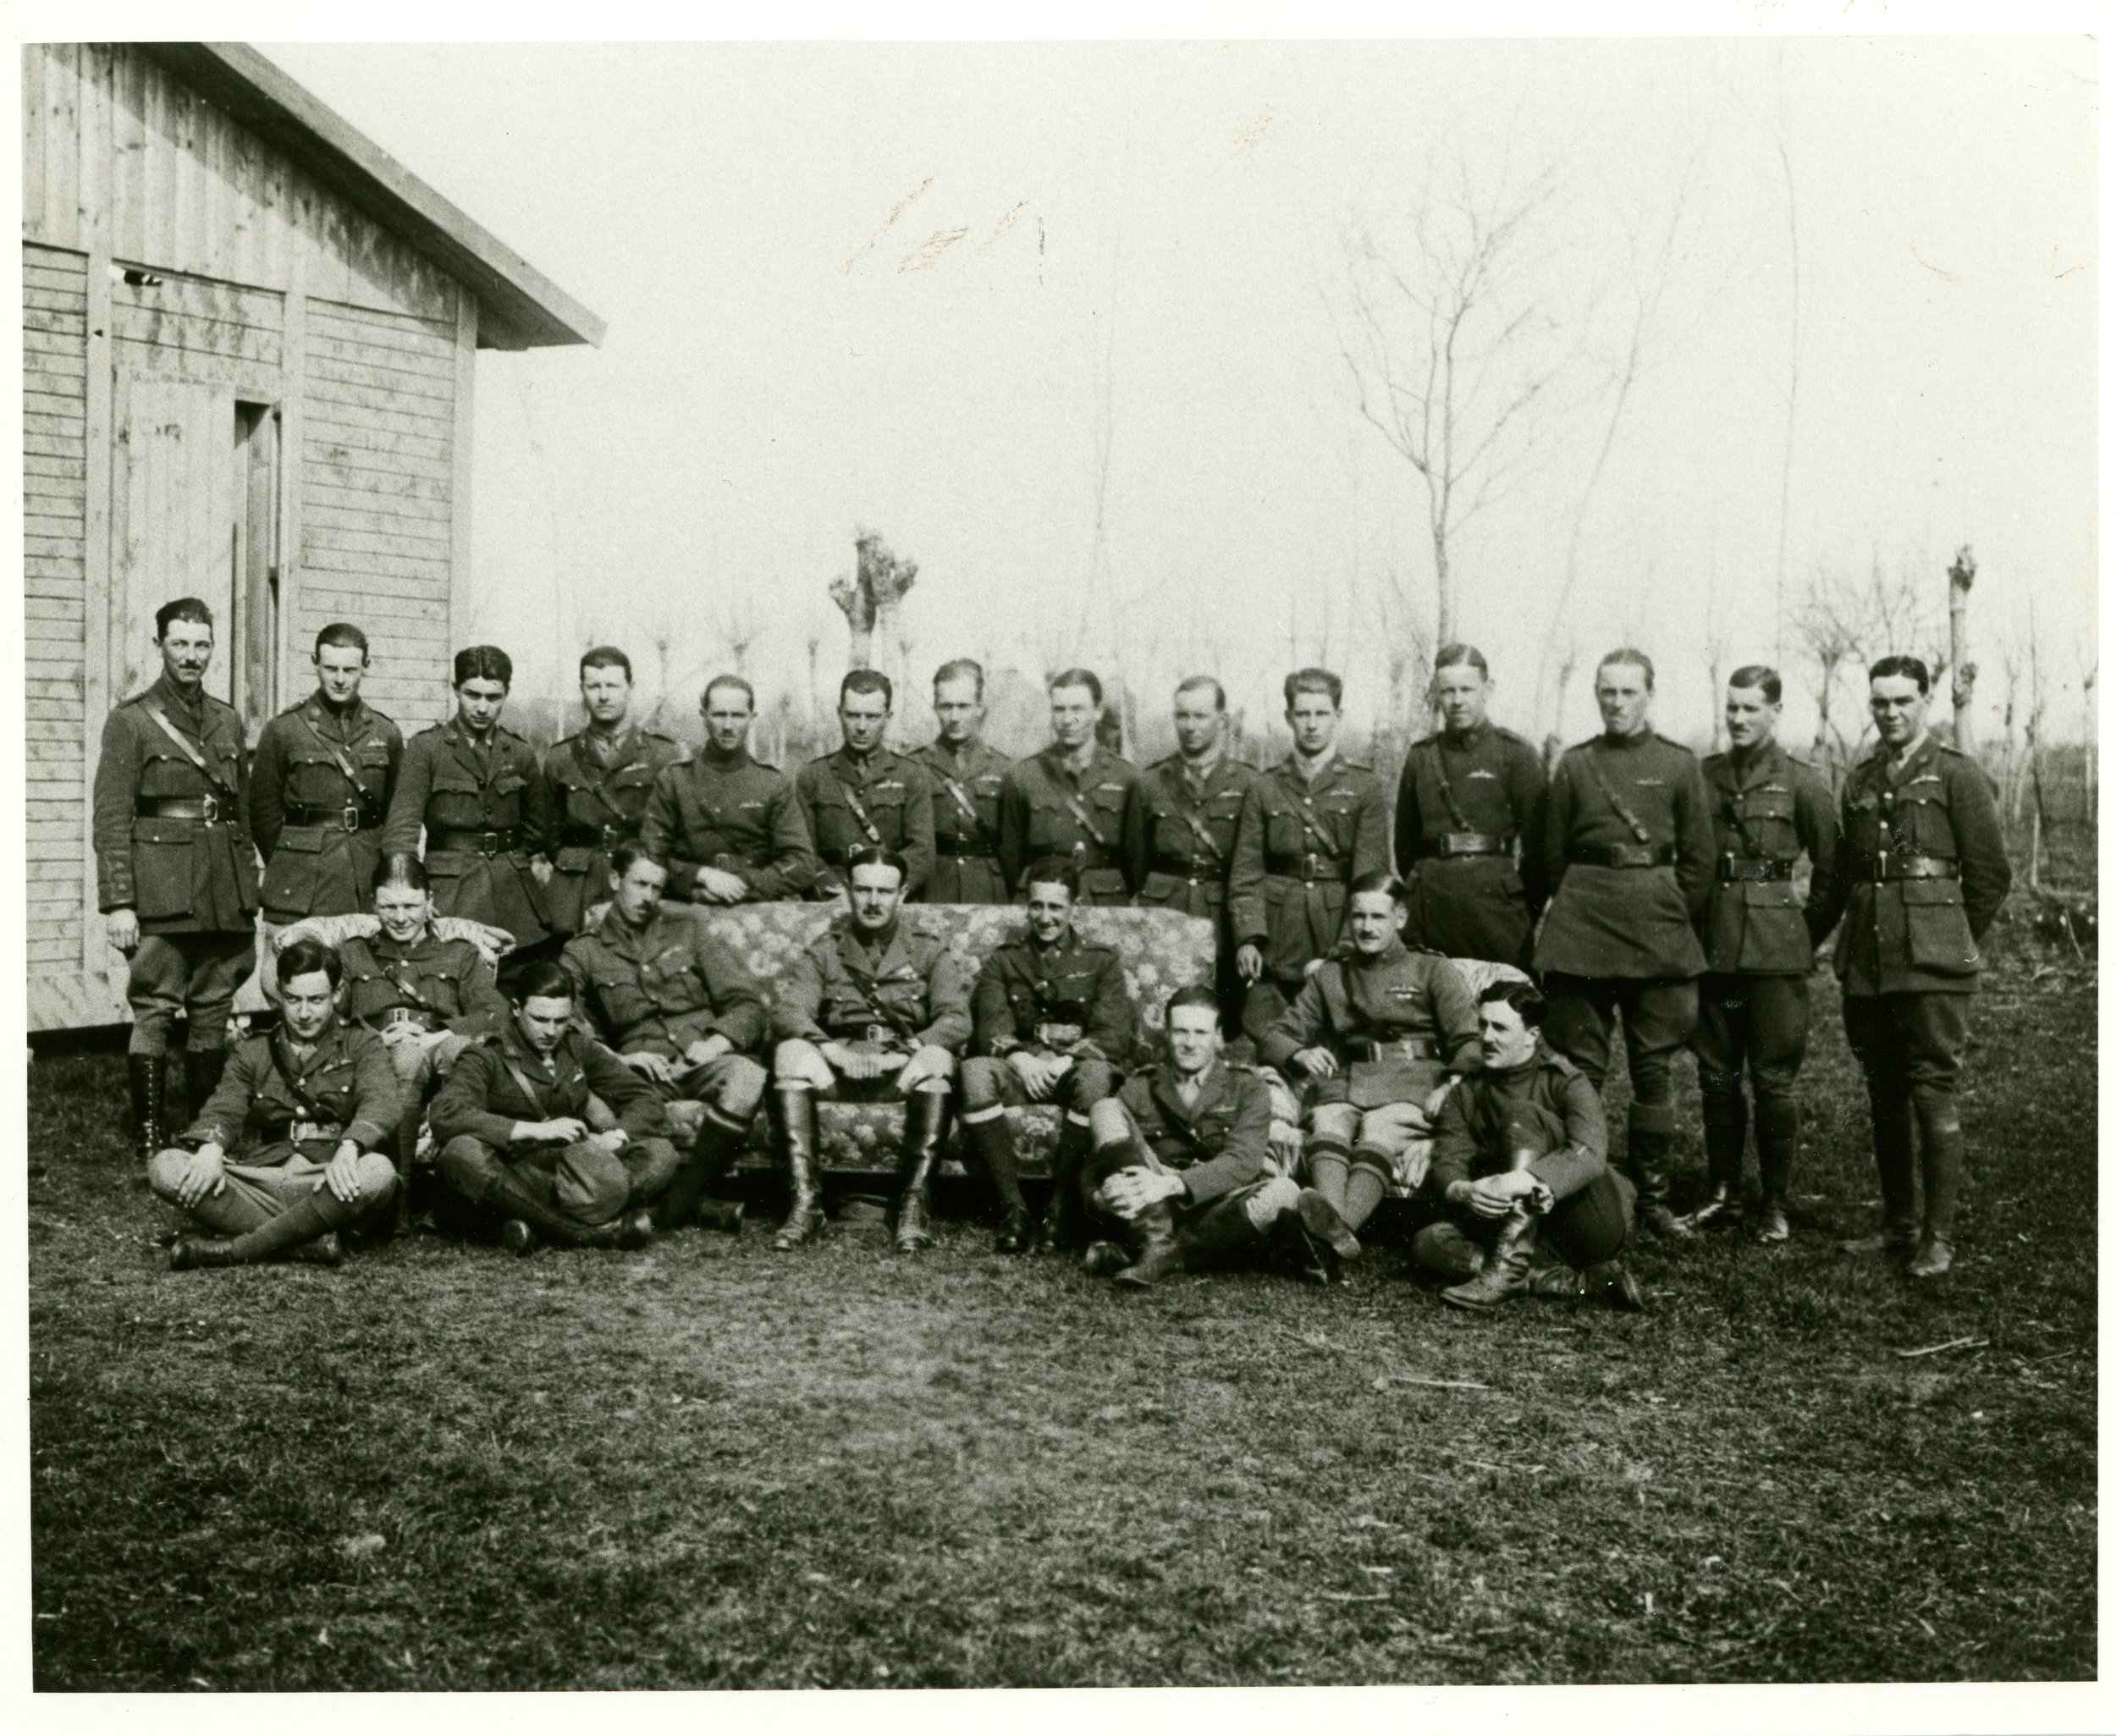 """Of the pilots of No. 66 Squadron RFC photographed at San Pietro in Gu in March 1918, Birks remembered the following: standing, second from left, Lt. Christopher McEvoy (9 victories); third, 2nd Lt. Charles C. Robinson; fifth, Lt. Francis S. Symondson (13), sixth, 2nd Lt. Herbert N.E. Row (3), seventh, 2nd Lt. Robert G. Reid (3), ninth, 2nd Lt. Henry B. Homan (killed in crash, 4 April 1918), twelfth, 2nd Lt. Gordon F. Mason Apps (10); and thirteenth, 2nd Lt Gerald A. Birks (12). Seated, first from left, 2nd Lt. Norman S. Taylor (3), second, Captain William Topham, recording officer, third, 2nd Lt. Stanley Stanger (13 victories), fourth, Capt. John W. Warnock, """"my first flight commander"""" (1), fifth, Maj. John TudorPowell Whittaker, squadron CO; sixth, Capt. Hilliard Brooke Bell (9), seventh, 2nd Lt. Alan Jerrard, who on 30 March was taken prisoner in an action that earned him the only Victoria Cross awarded to a Camel pilot (7); eighth, Capt. Peter Carpenter (24); and Lt. Harold R. Eycott-Martin (8). (gerald birks album, courtesy jon guttman)"""